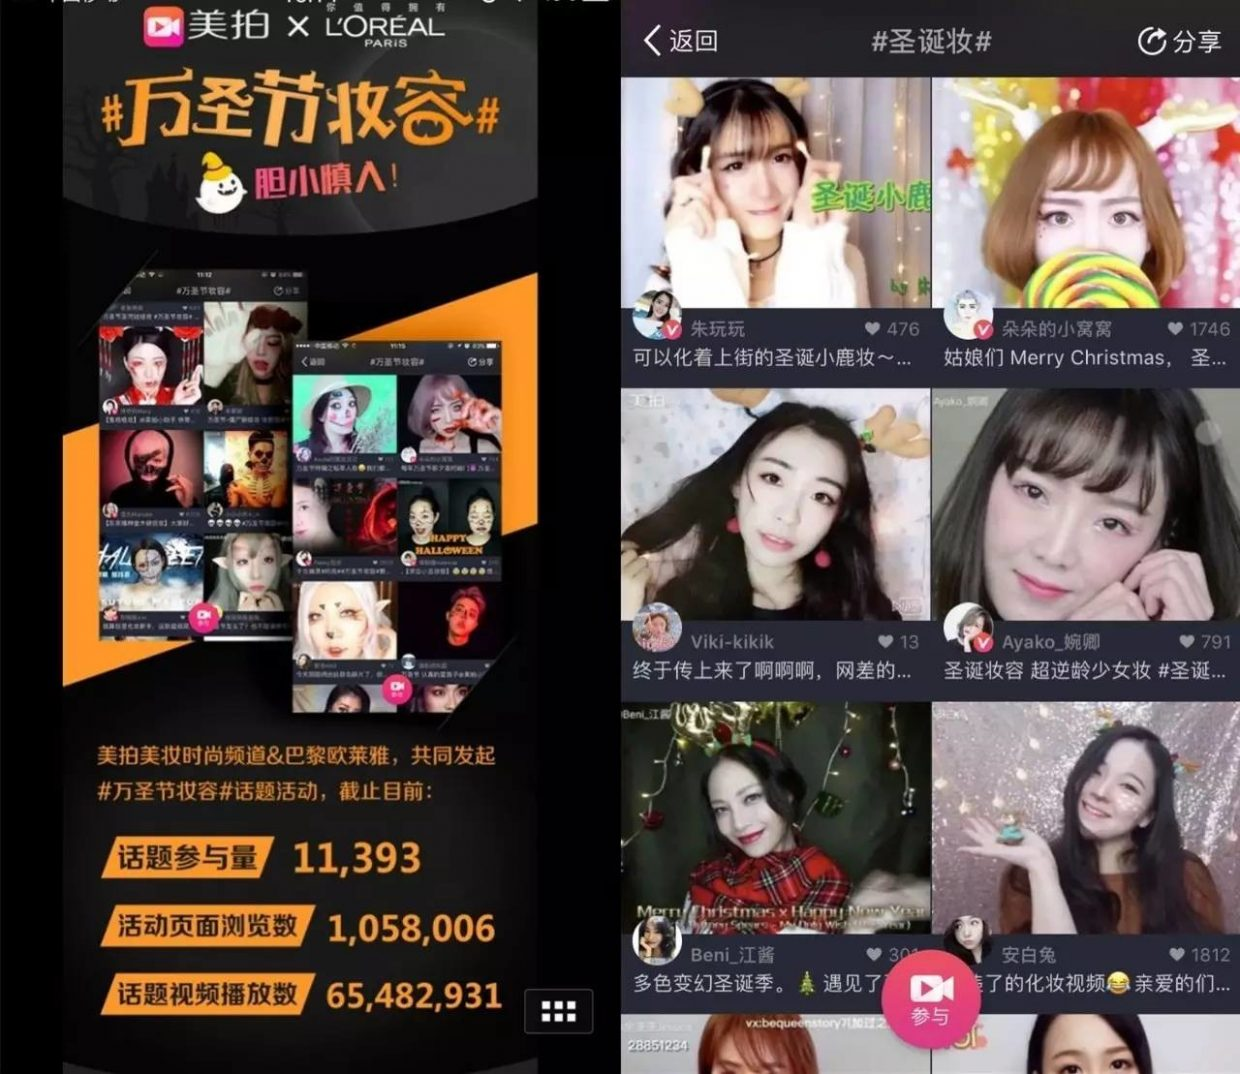 Meipai video marketing in China